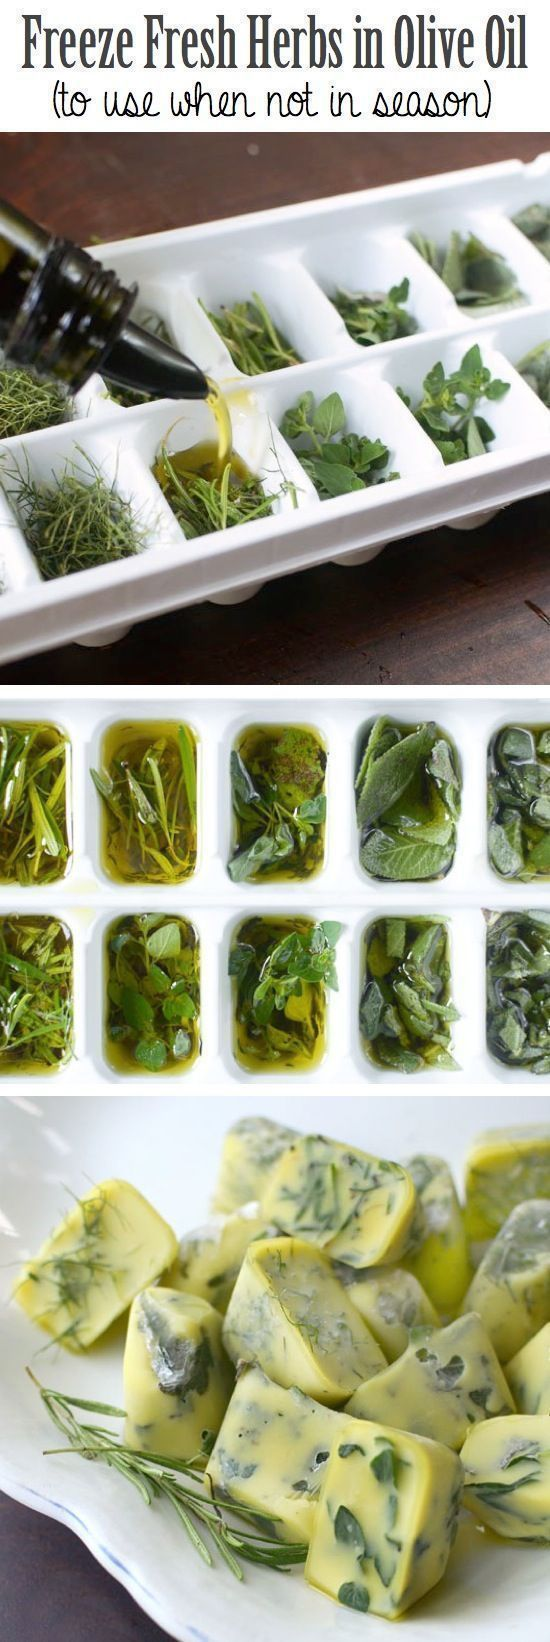 Preserve herbs by freezing them in an ice cube tray with olive oil.